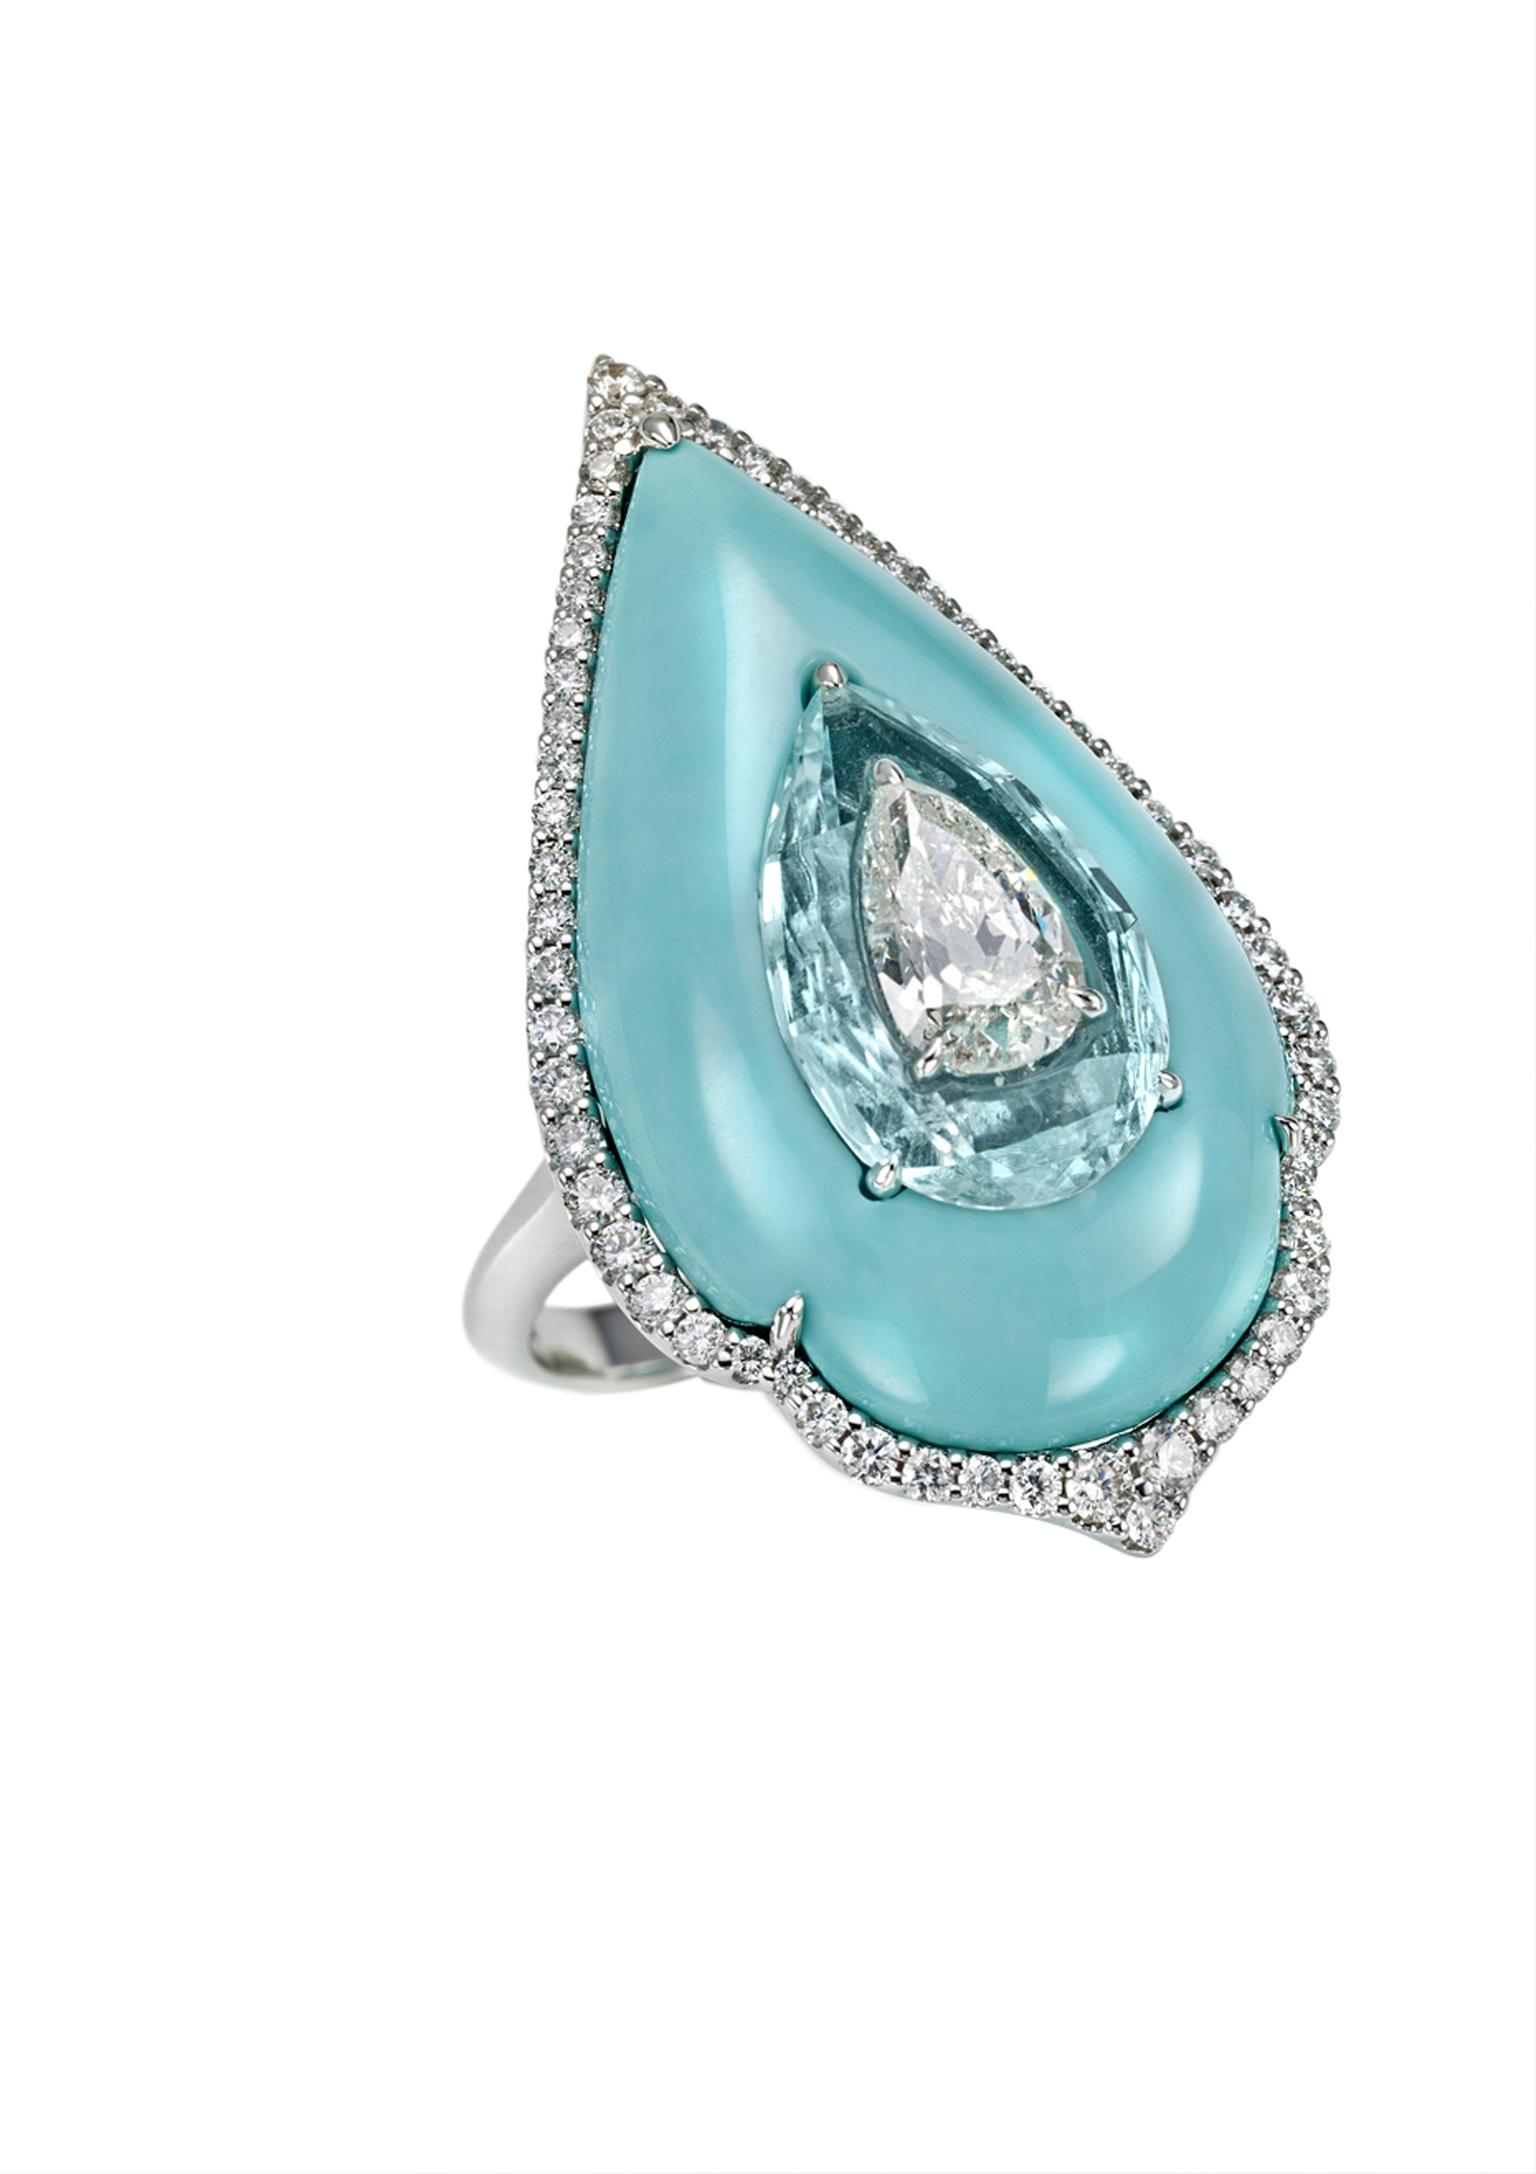 Bogh-Art diamond inlaid into paraiba and paraiba inlaid into turquoise ring (£16,900).